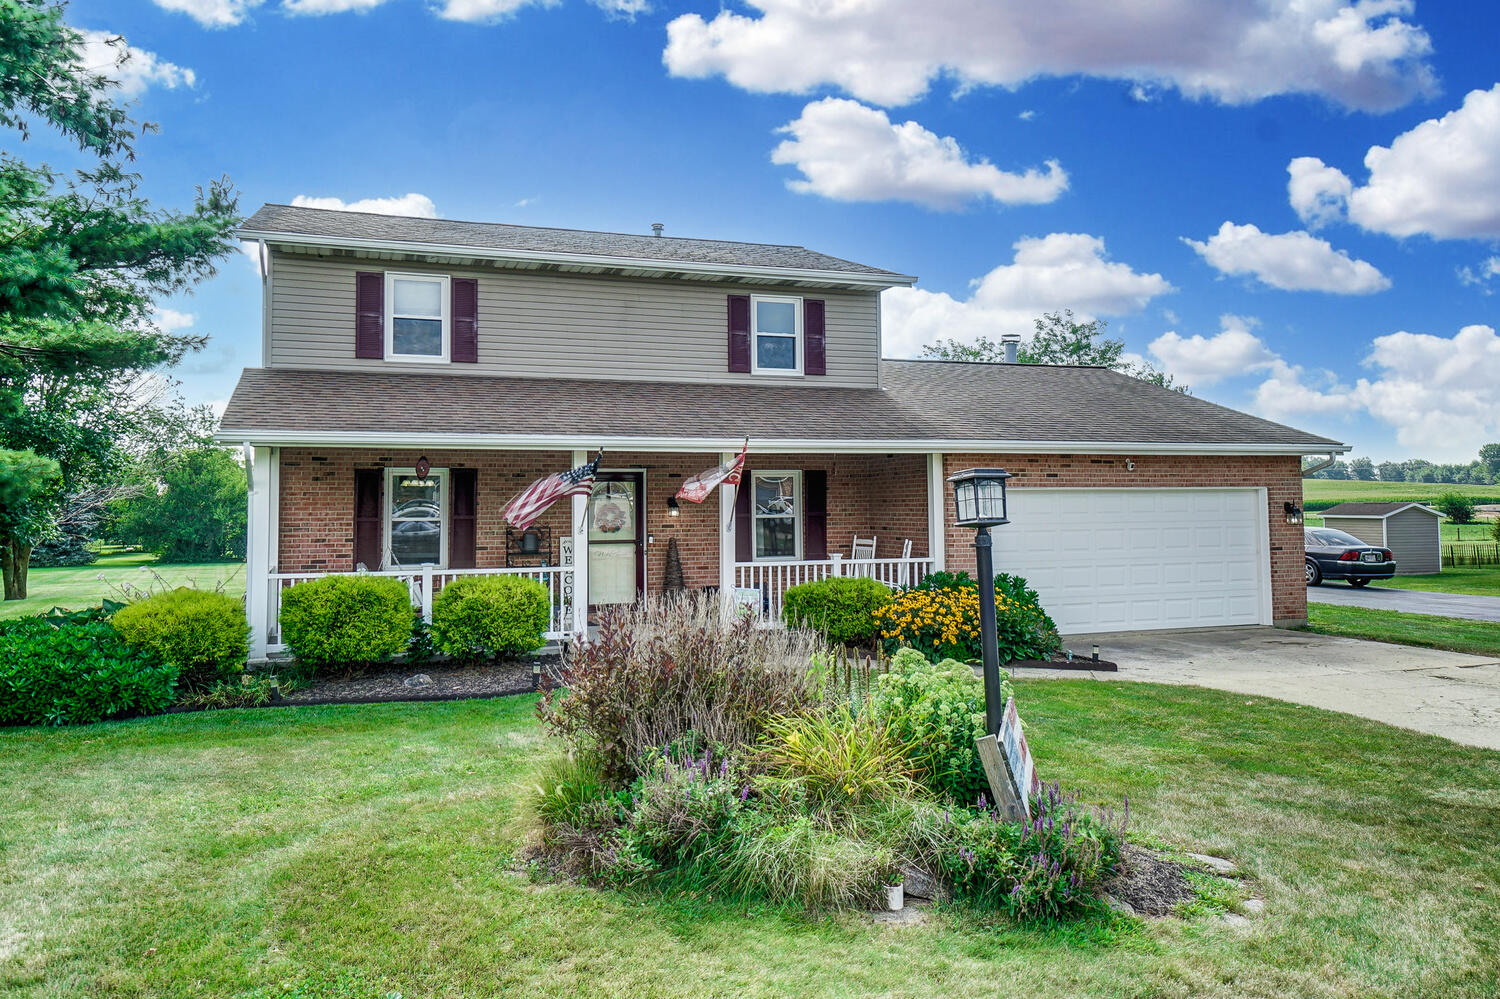 Photo 2 for 2958 Meadowgate Dr Springfield, OH 45502